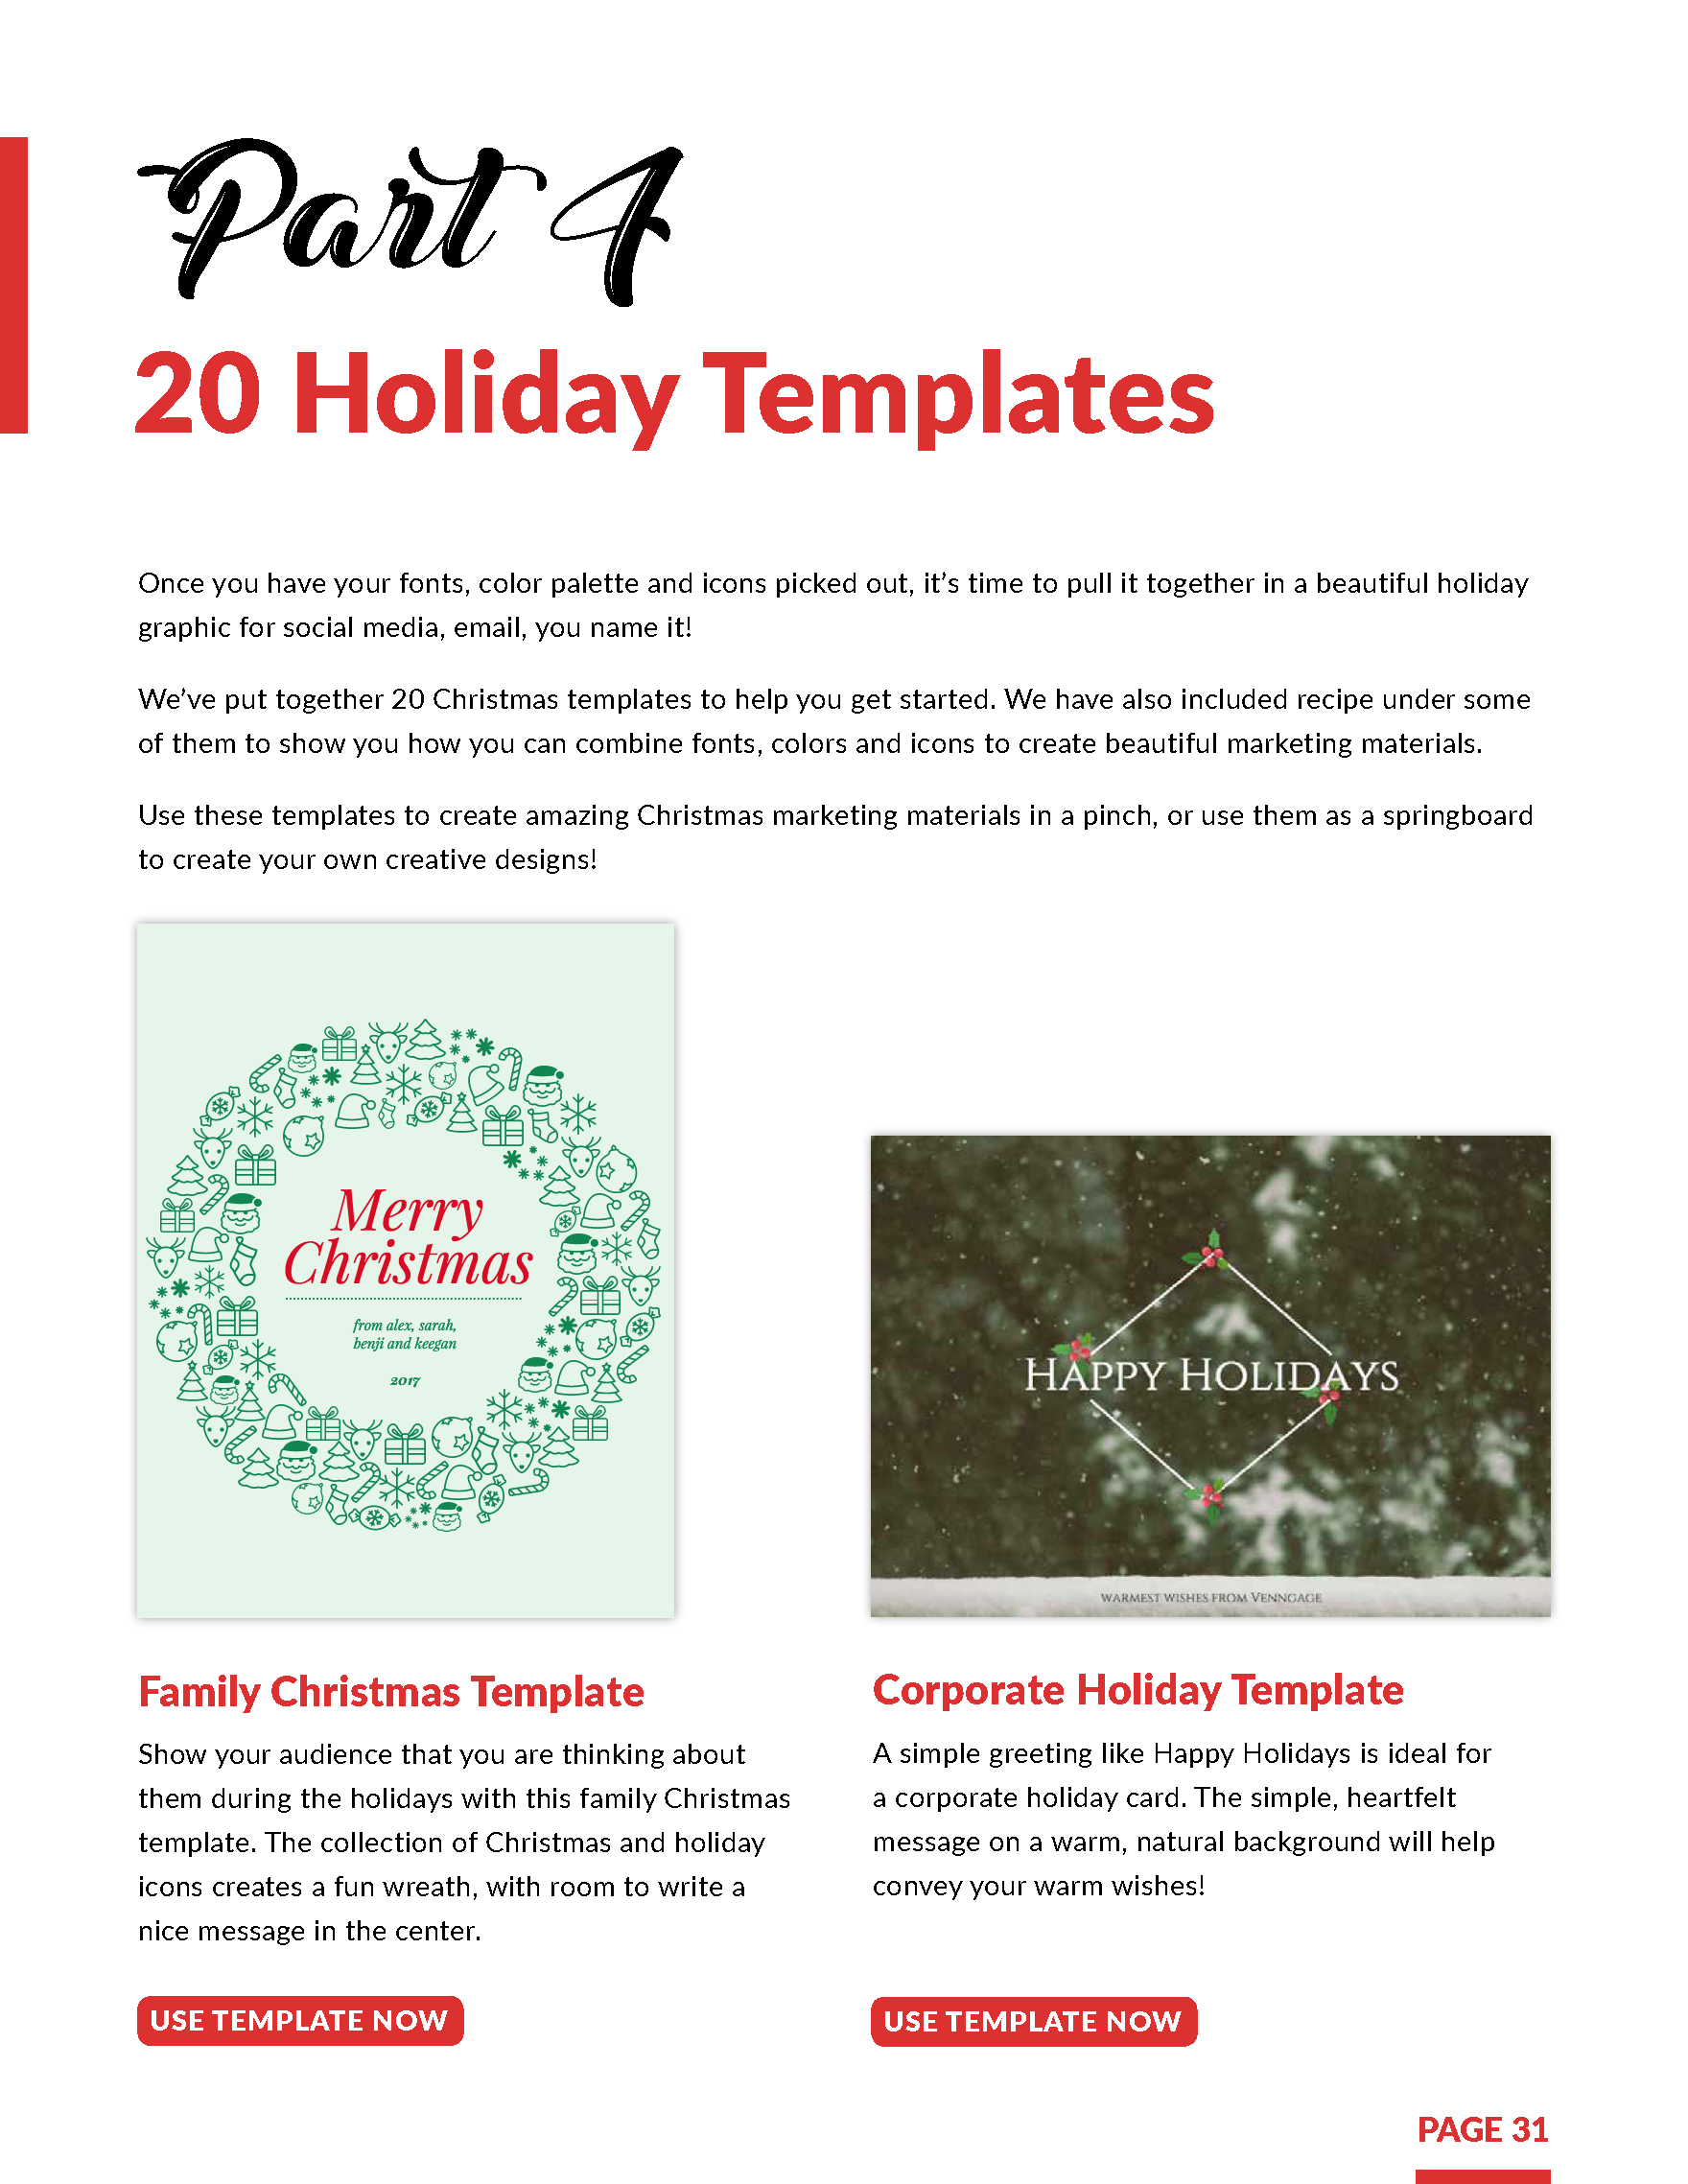 Holiday Marketing Kit From Hubspot And Venngage